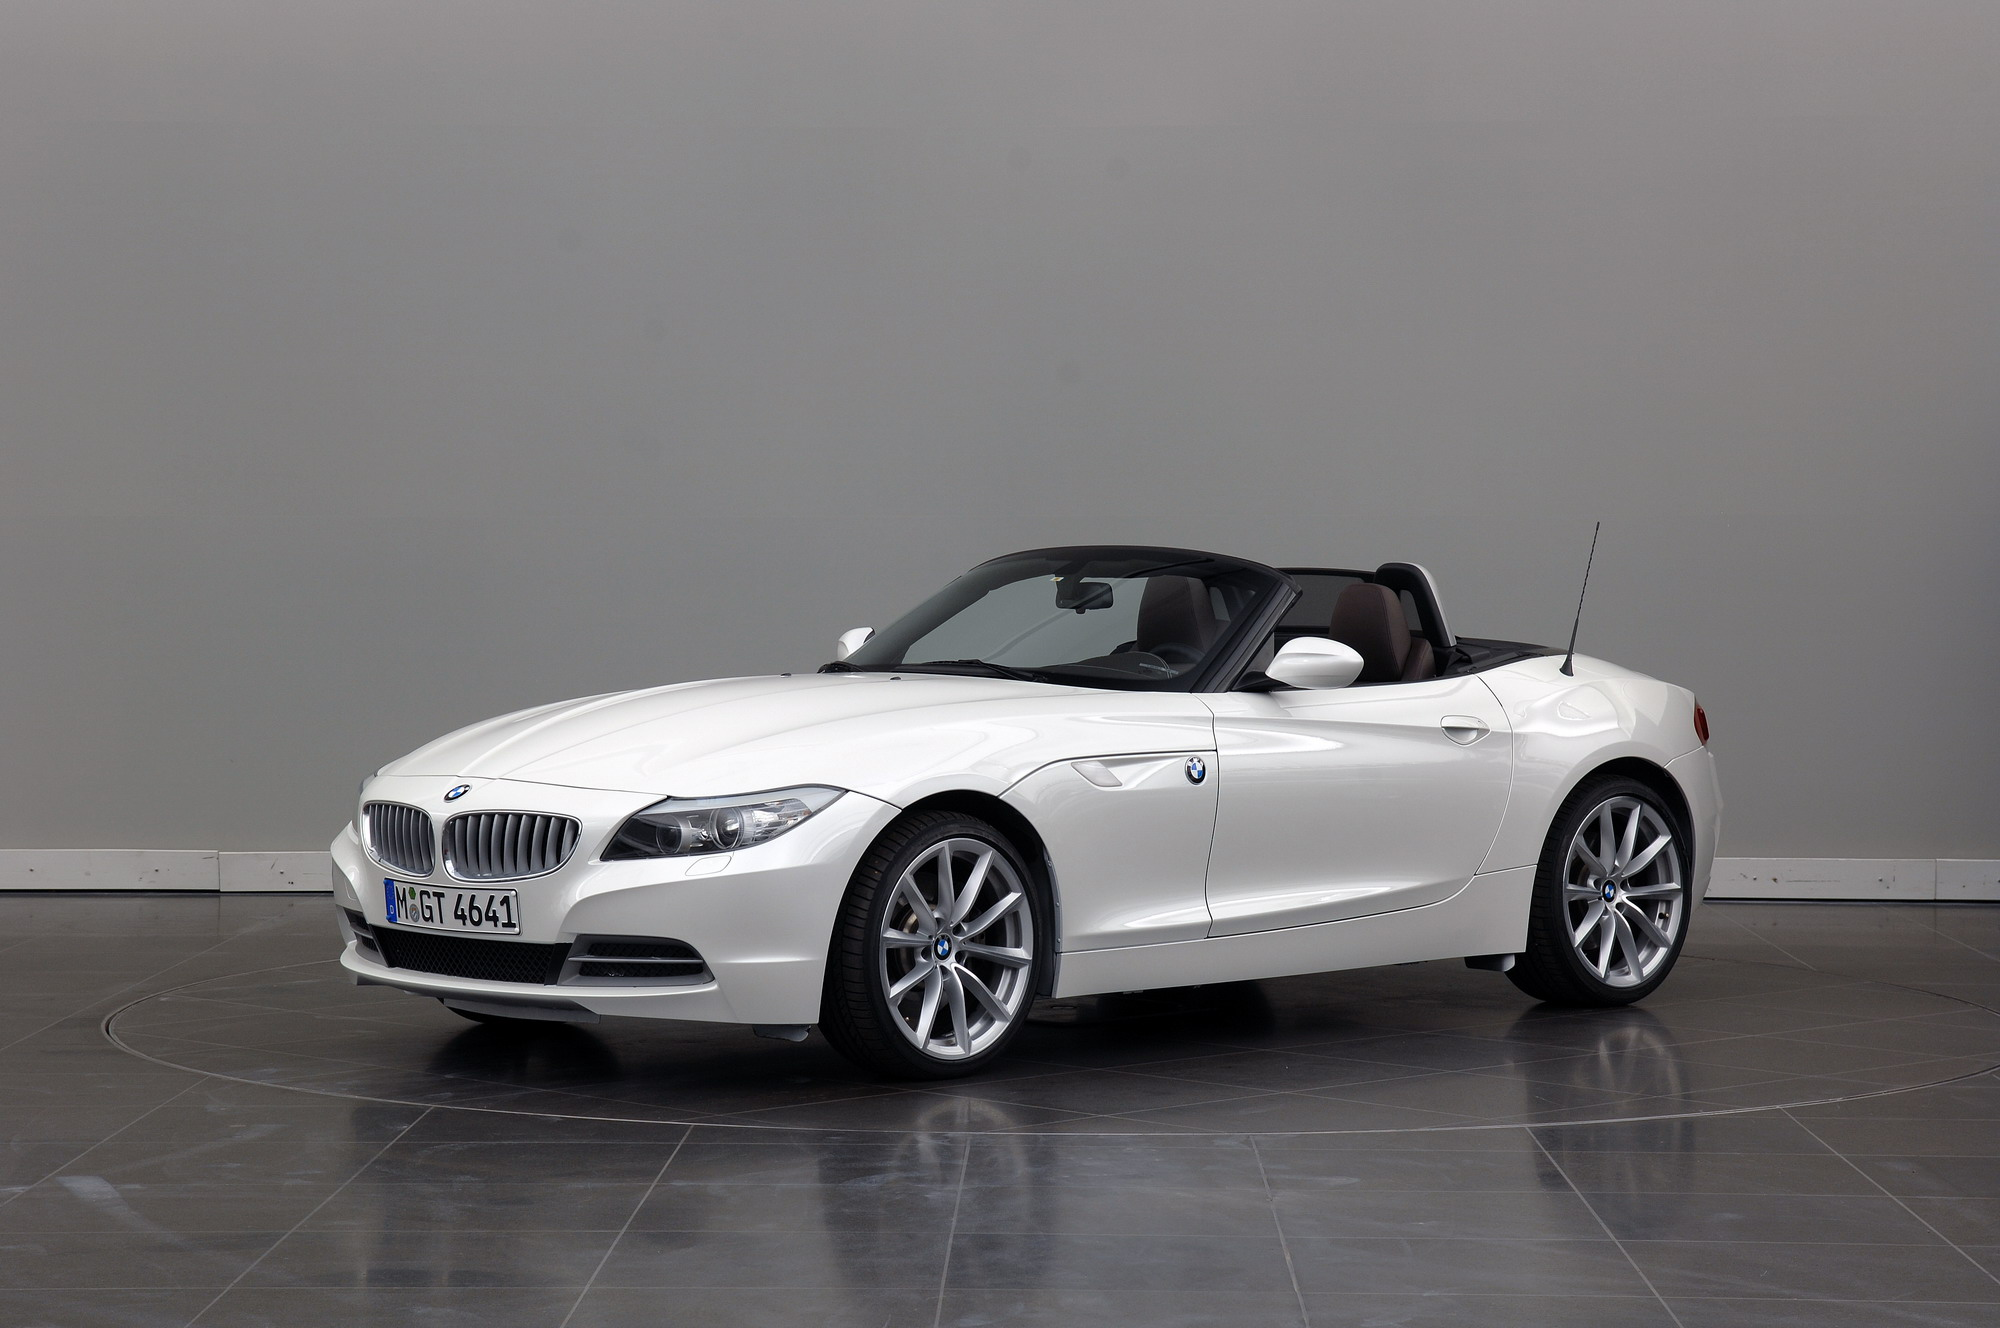 2011 BMW Z4 Design Pure Balance Review - Gallery - Top Speed